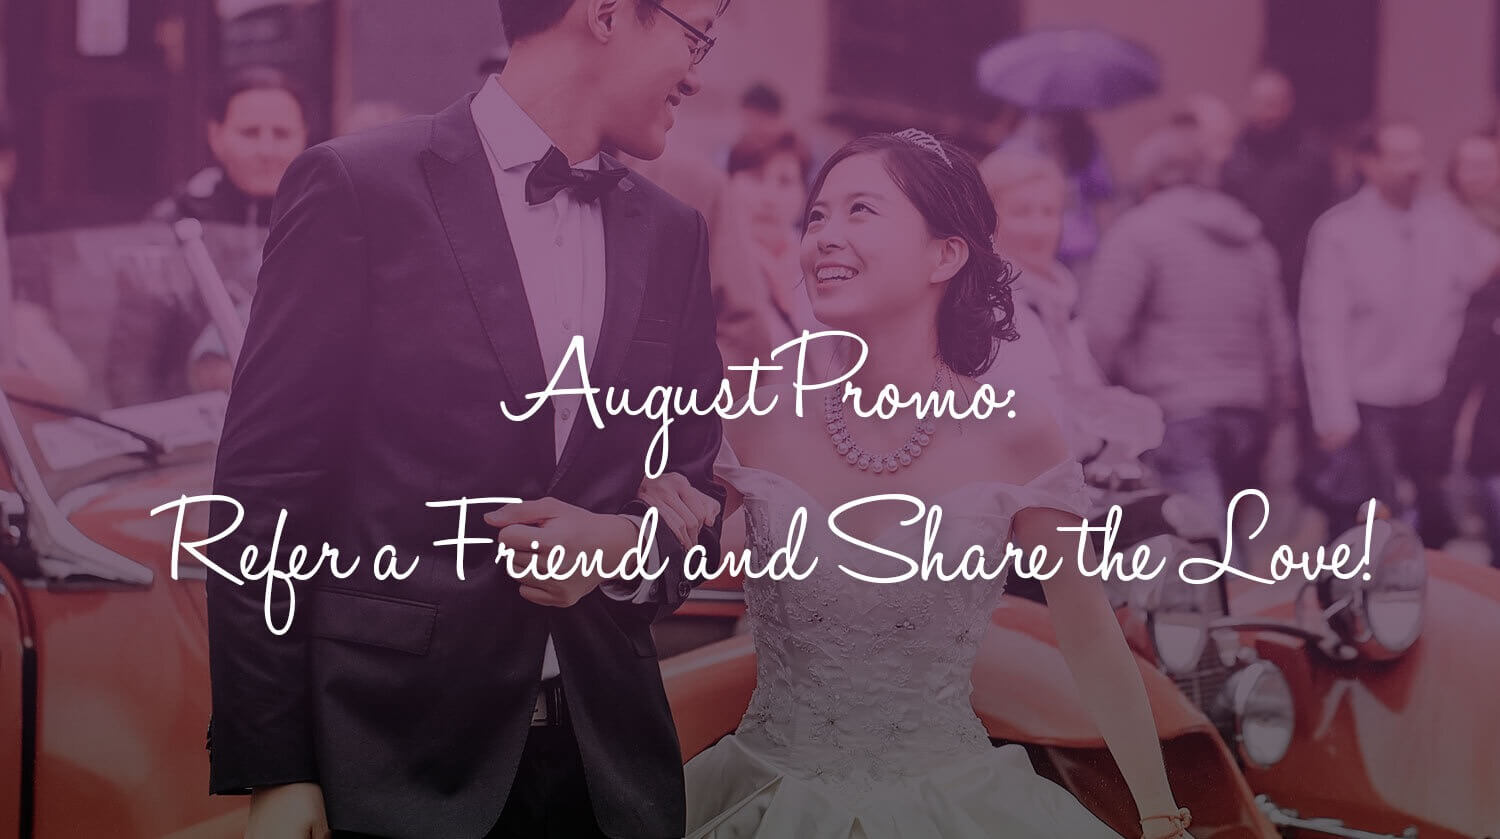 August Promo: Refer a Friend and Share the Love!